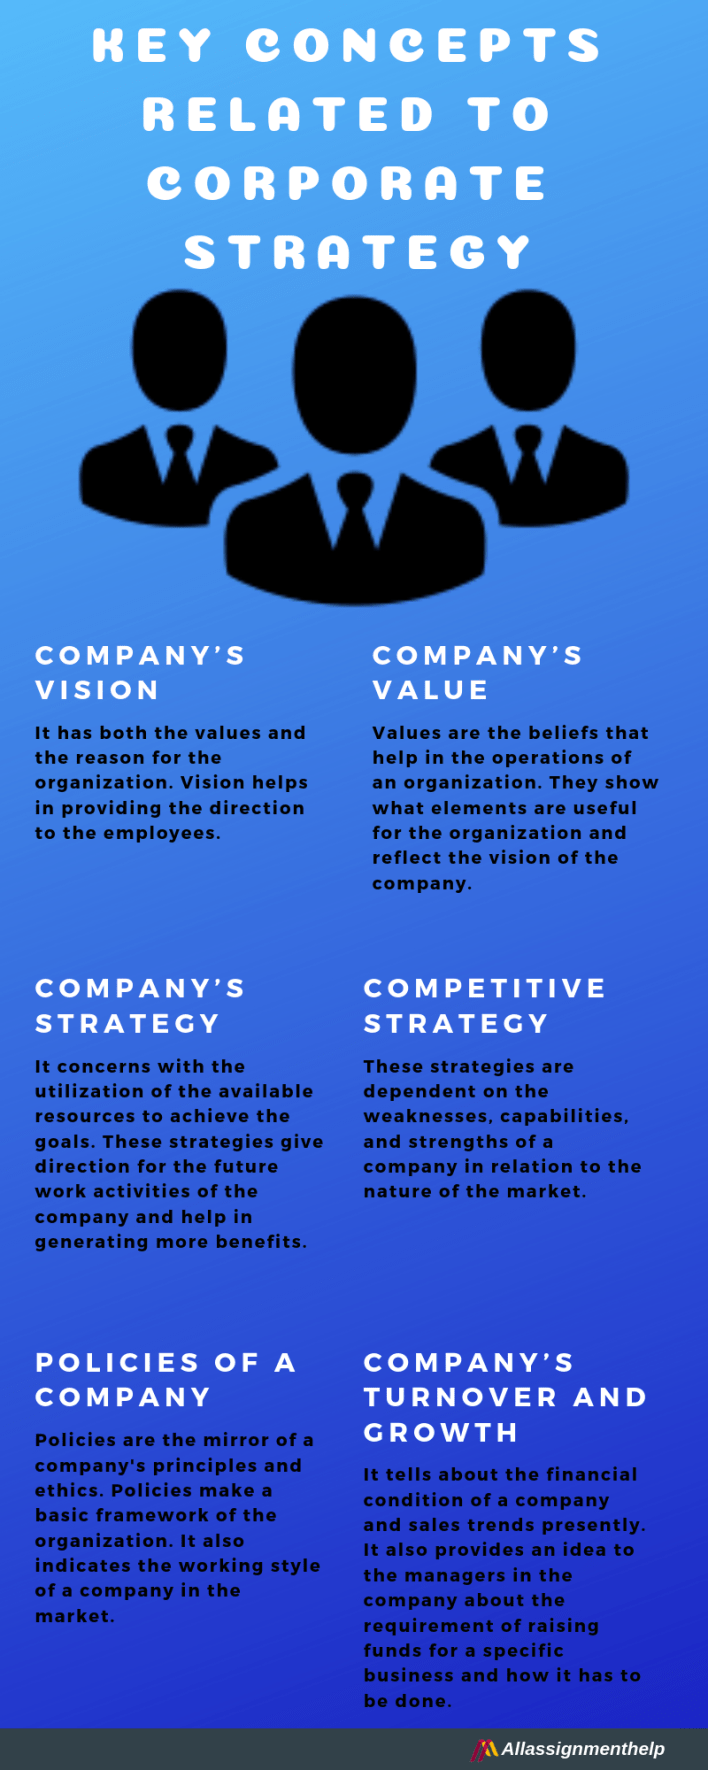 Key Concepts Related to Corporate Strategy.png